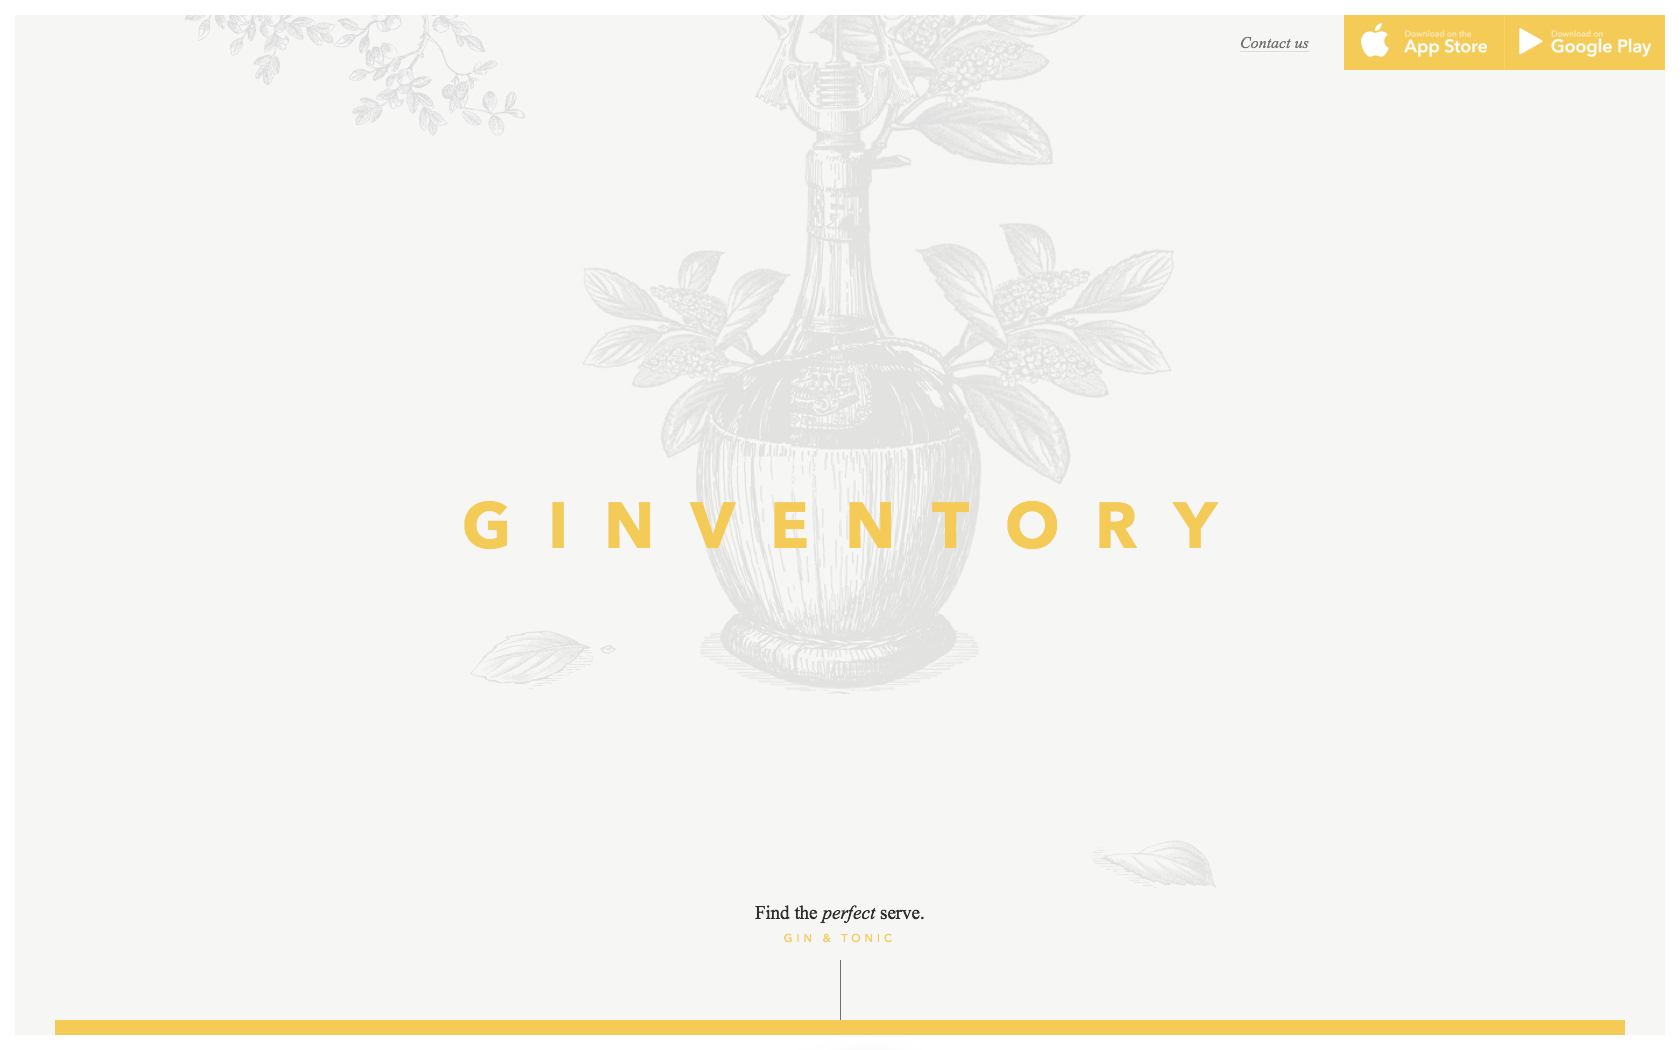 Ginventory 01